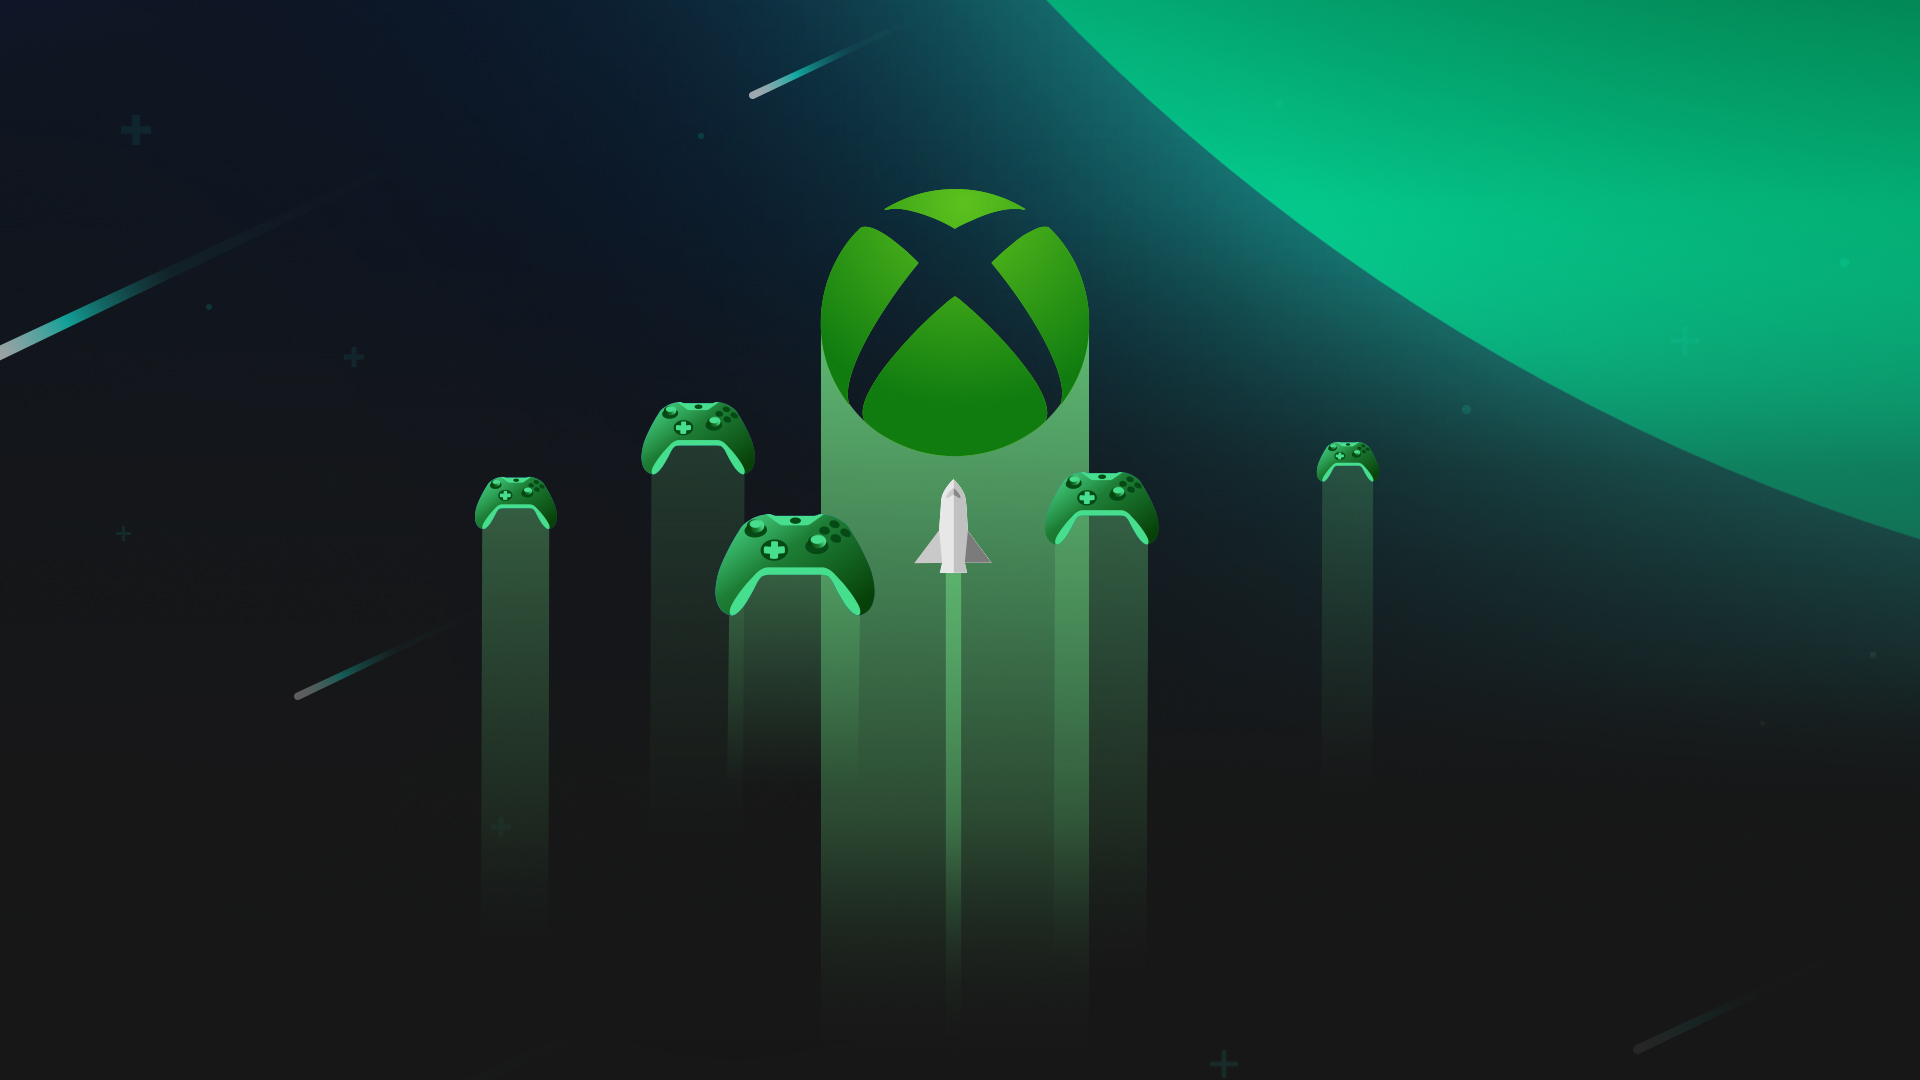 Illustration of green Xbox controllers flying through space towards a green planet